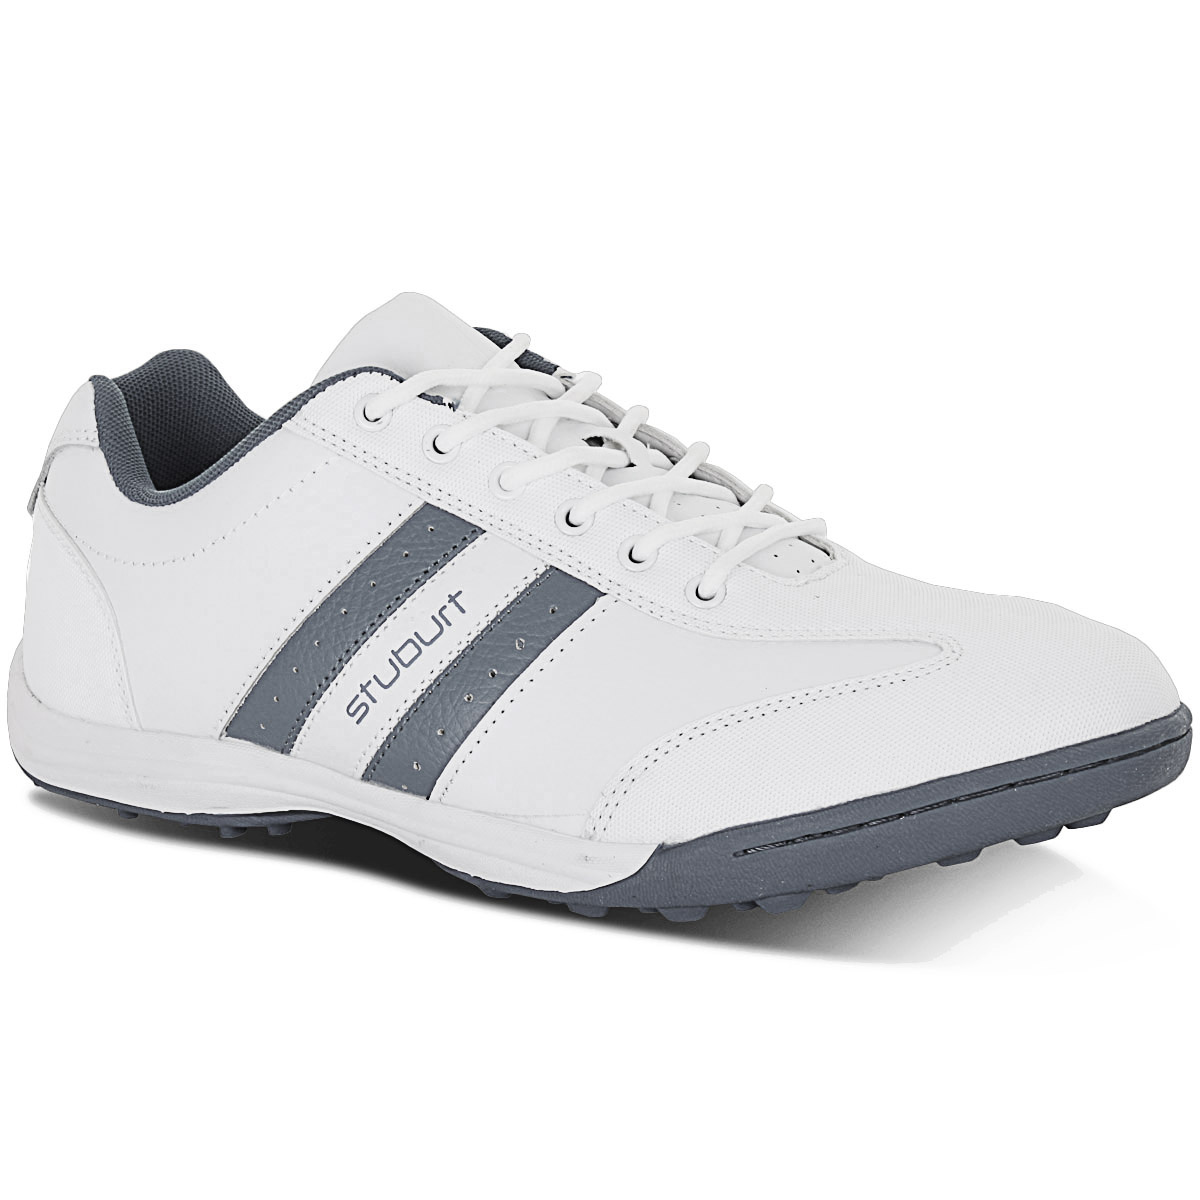 Stuburt-2014-Mens-Urban2-Spikeless-Golf-Shoes